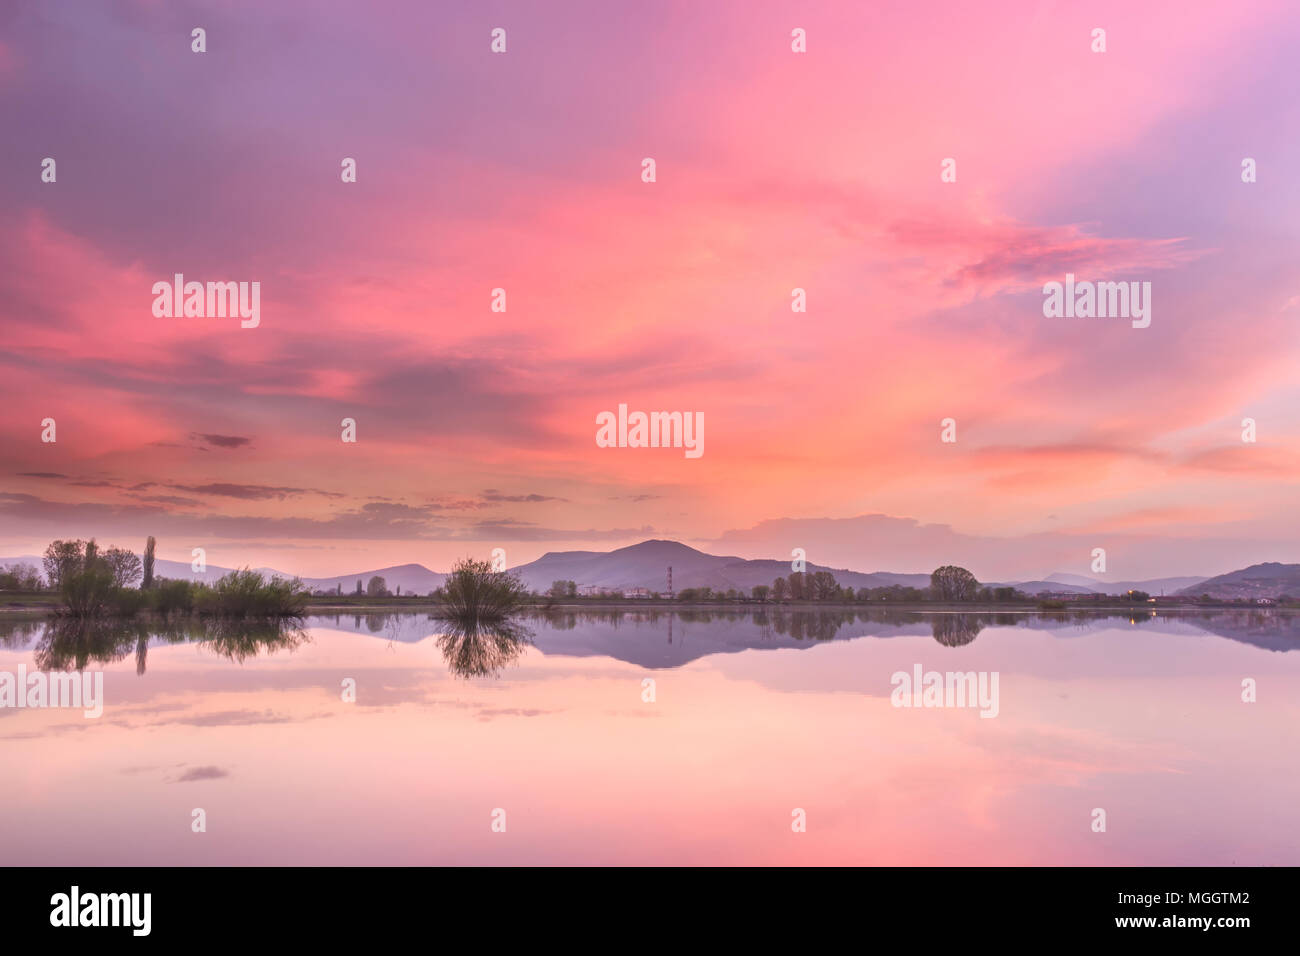 Burning Pirot cityscape sunset sky over artificial reflective lake and pink, orange fluffy clouds - Stock Image